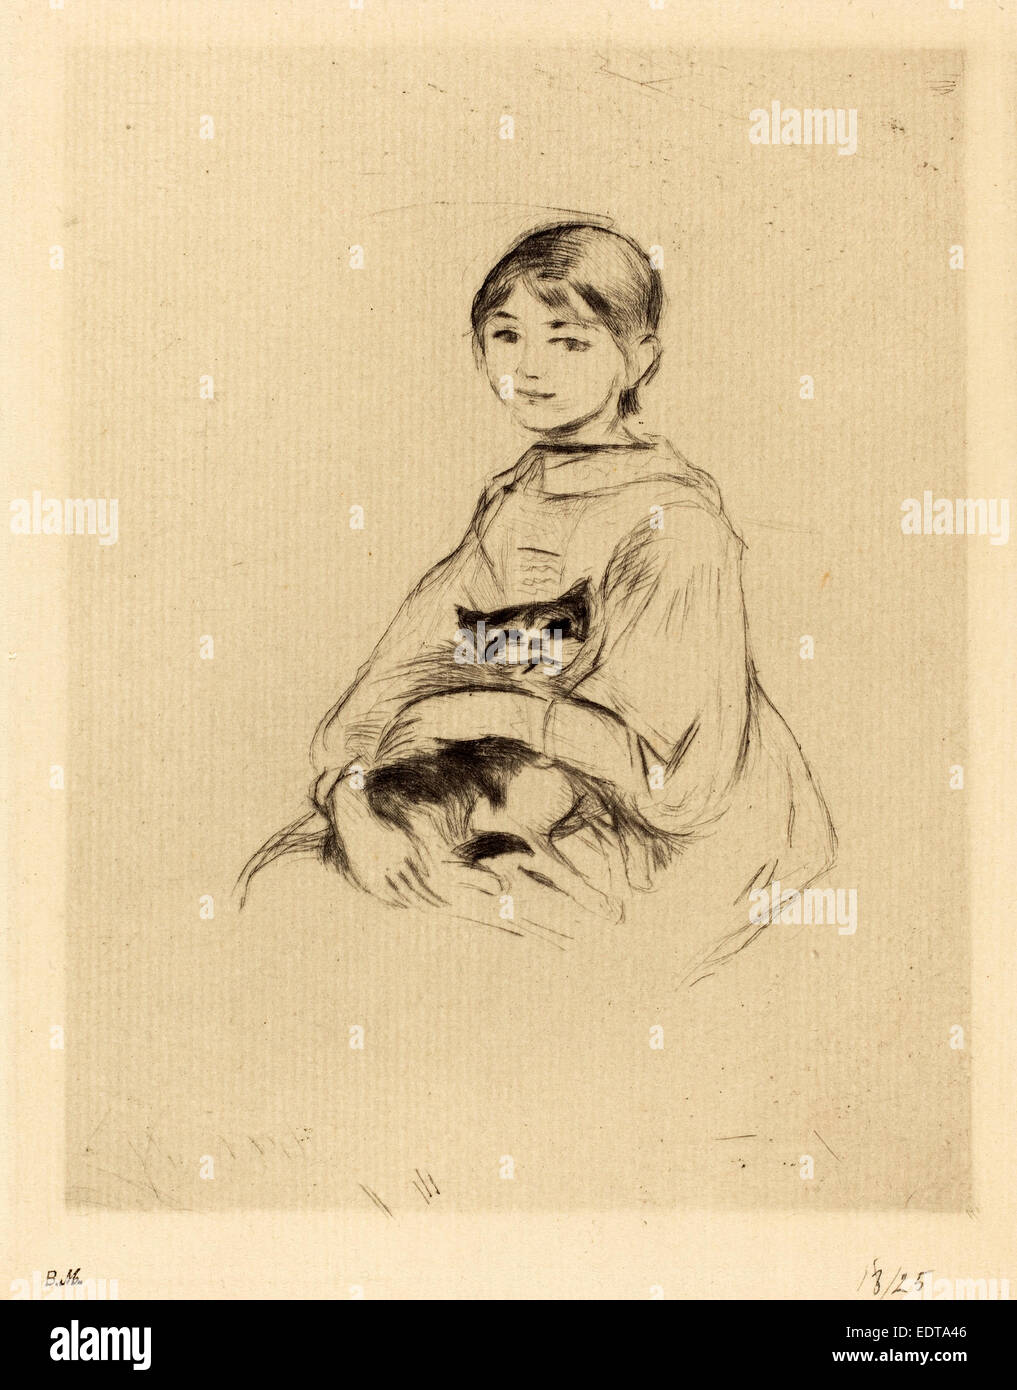 Berthe Morisot (French, 1841 - 1895), Little Girl with Cat, 1888-1890, drypoint [reprinted by Ambroise Vollard] - Stock Image